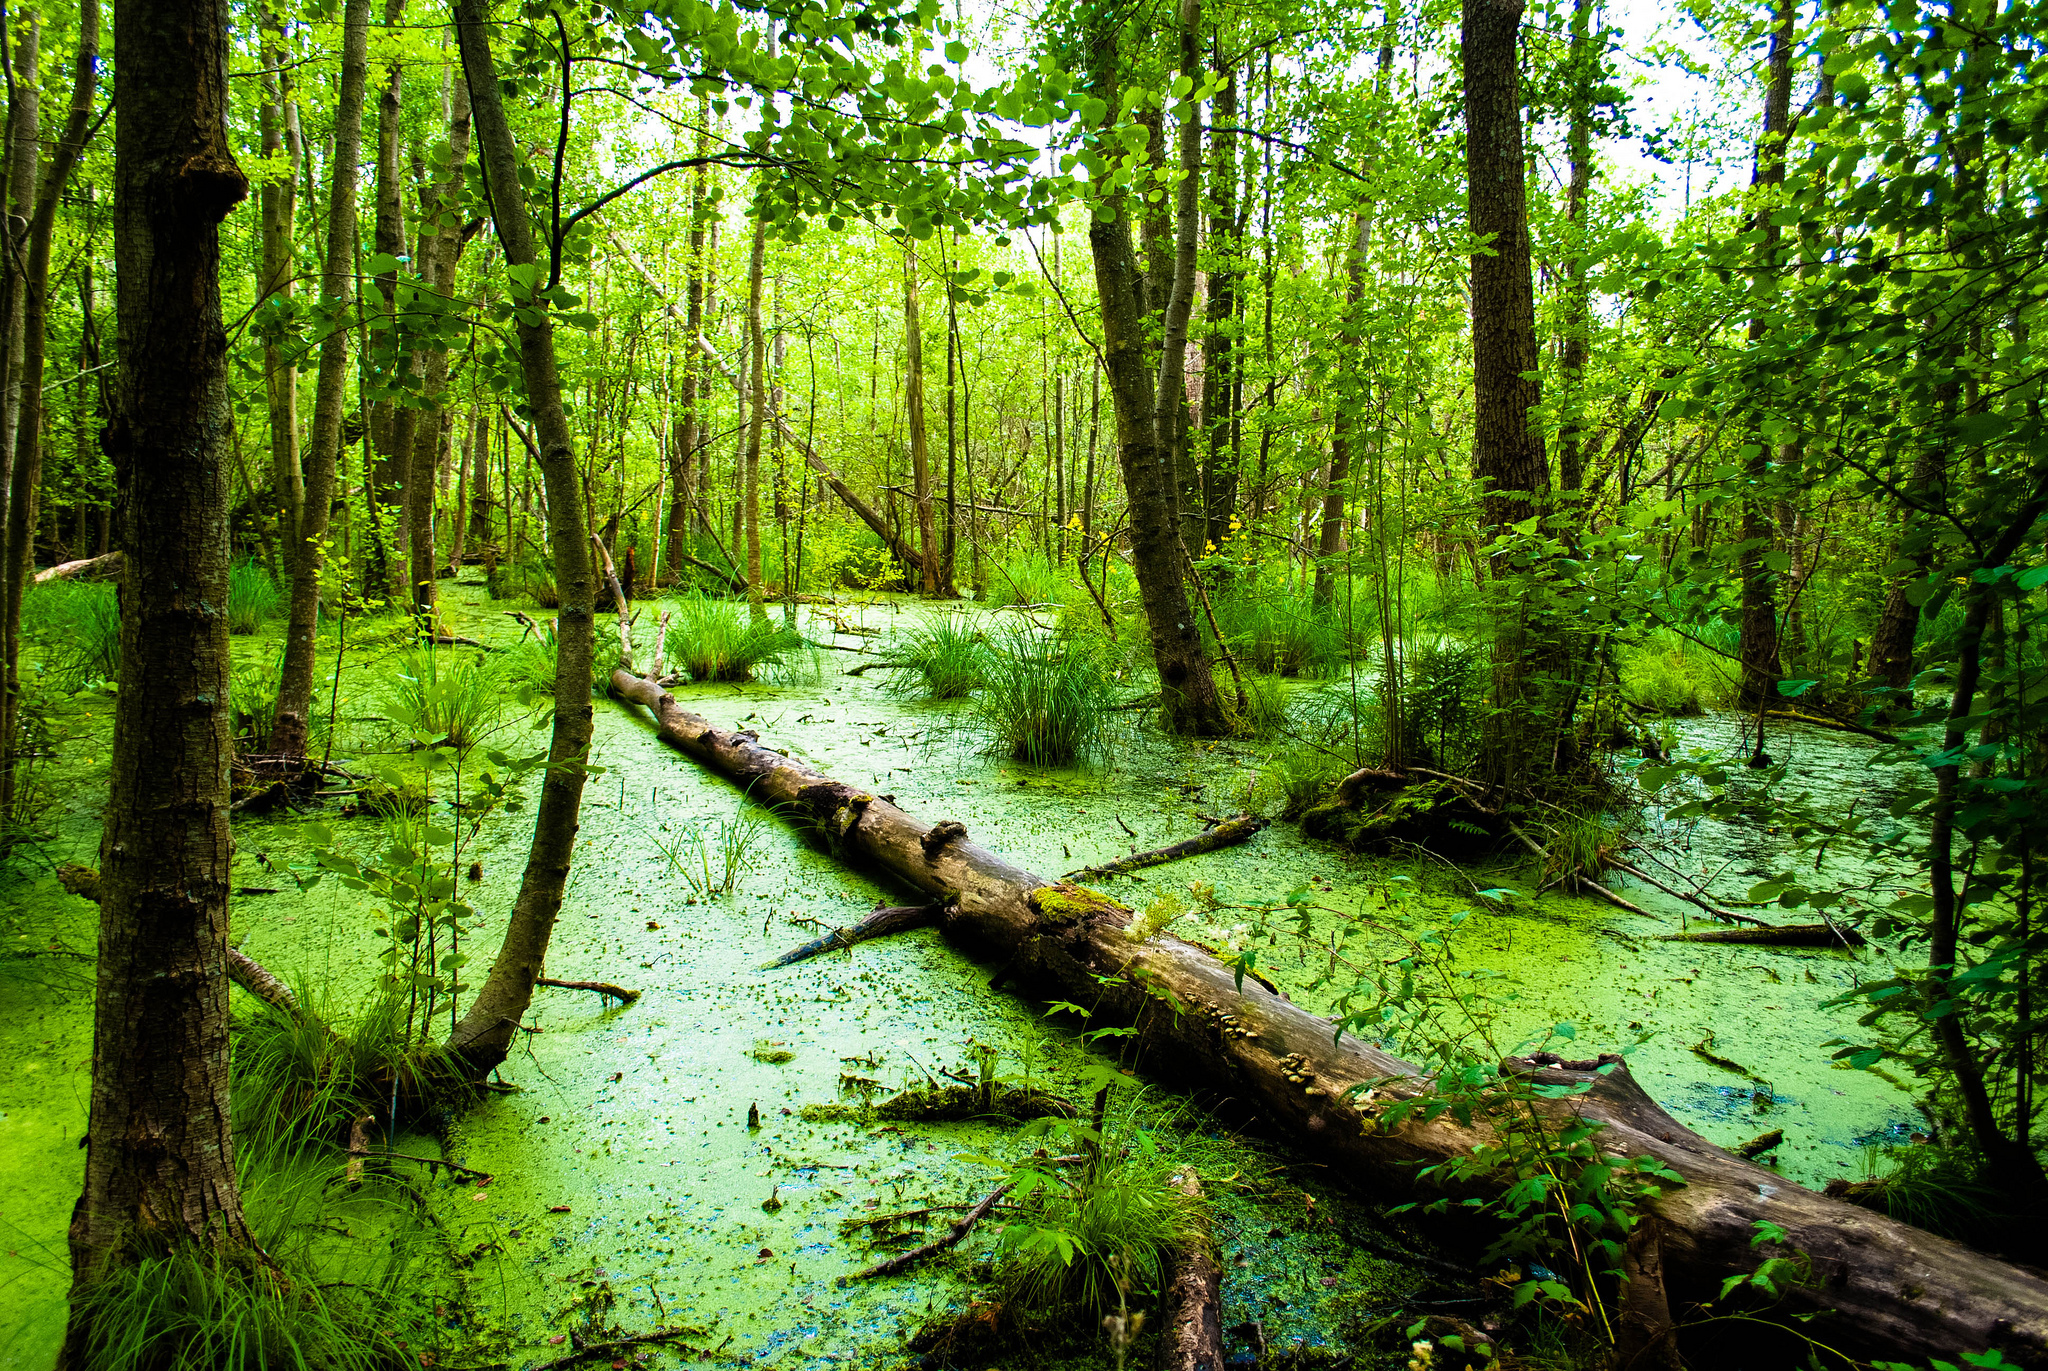 Swamp Computer Wallpapers Desktop Backgrounds 2048x1371 ID409811 2048x1371